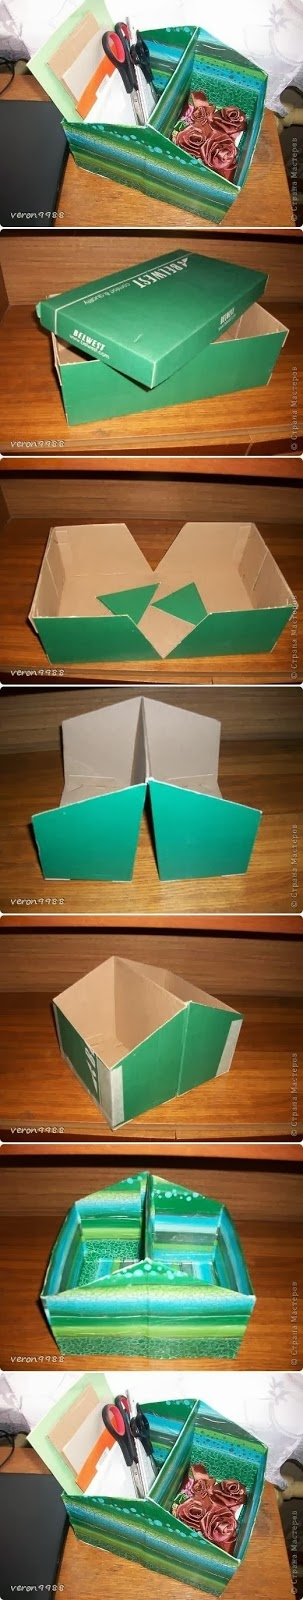 Diy Craft Storage Box Pictures Photos And Images For